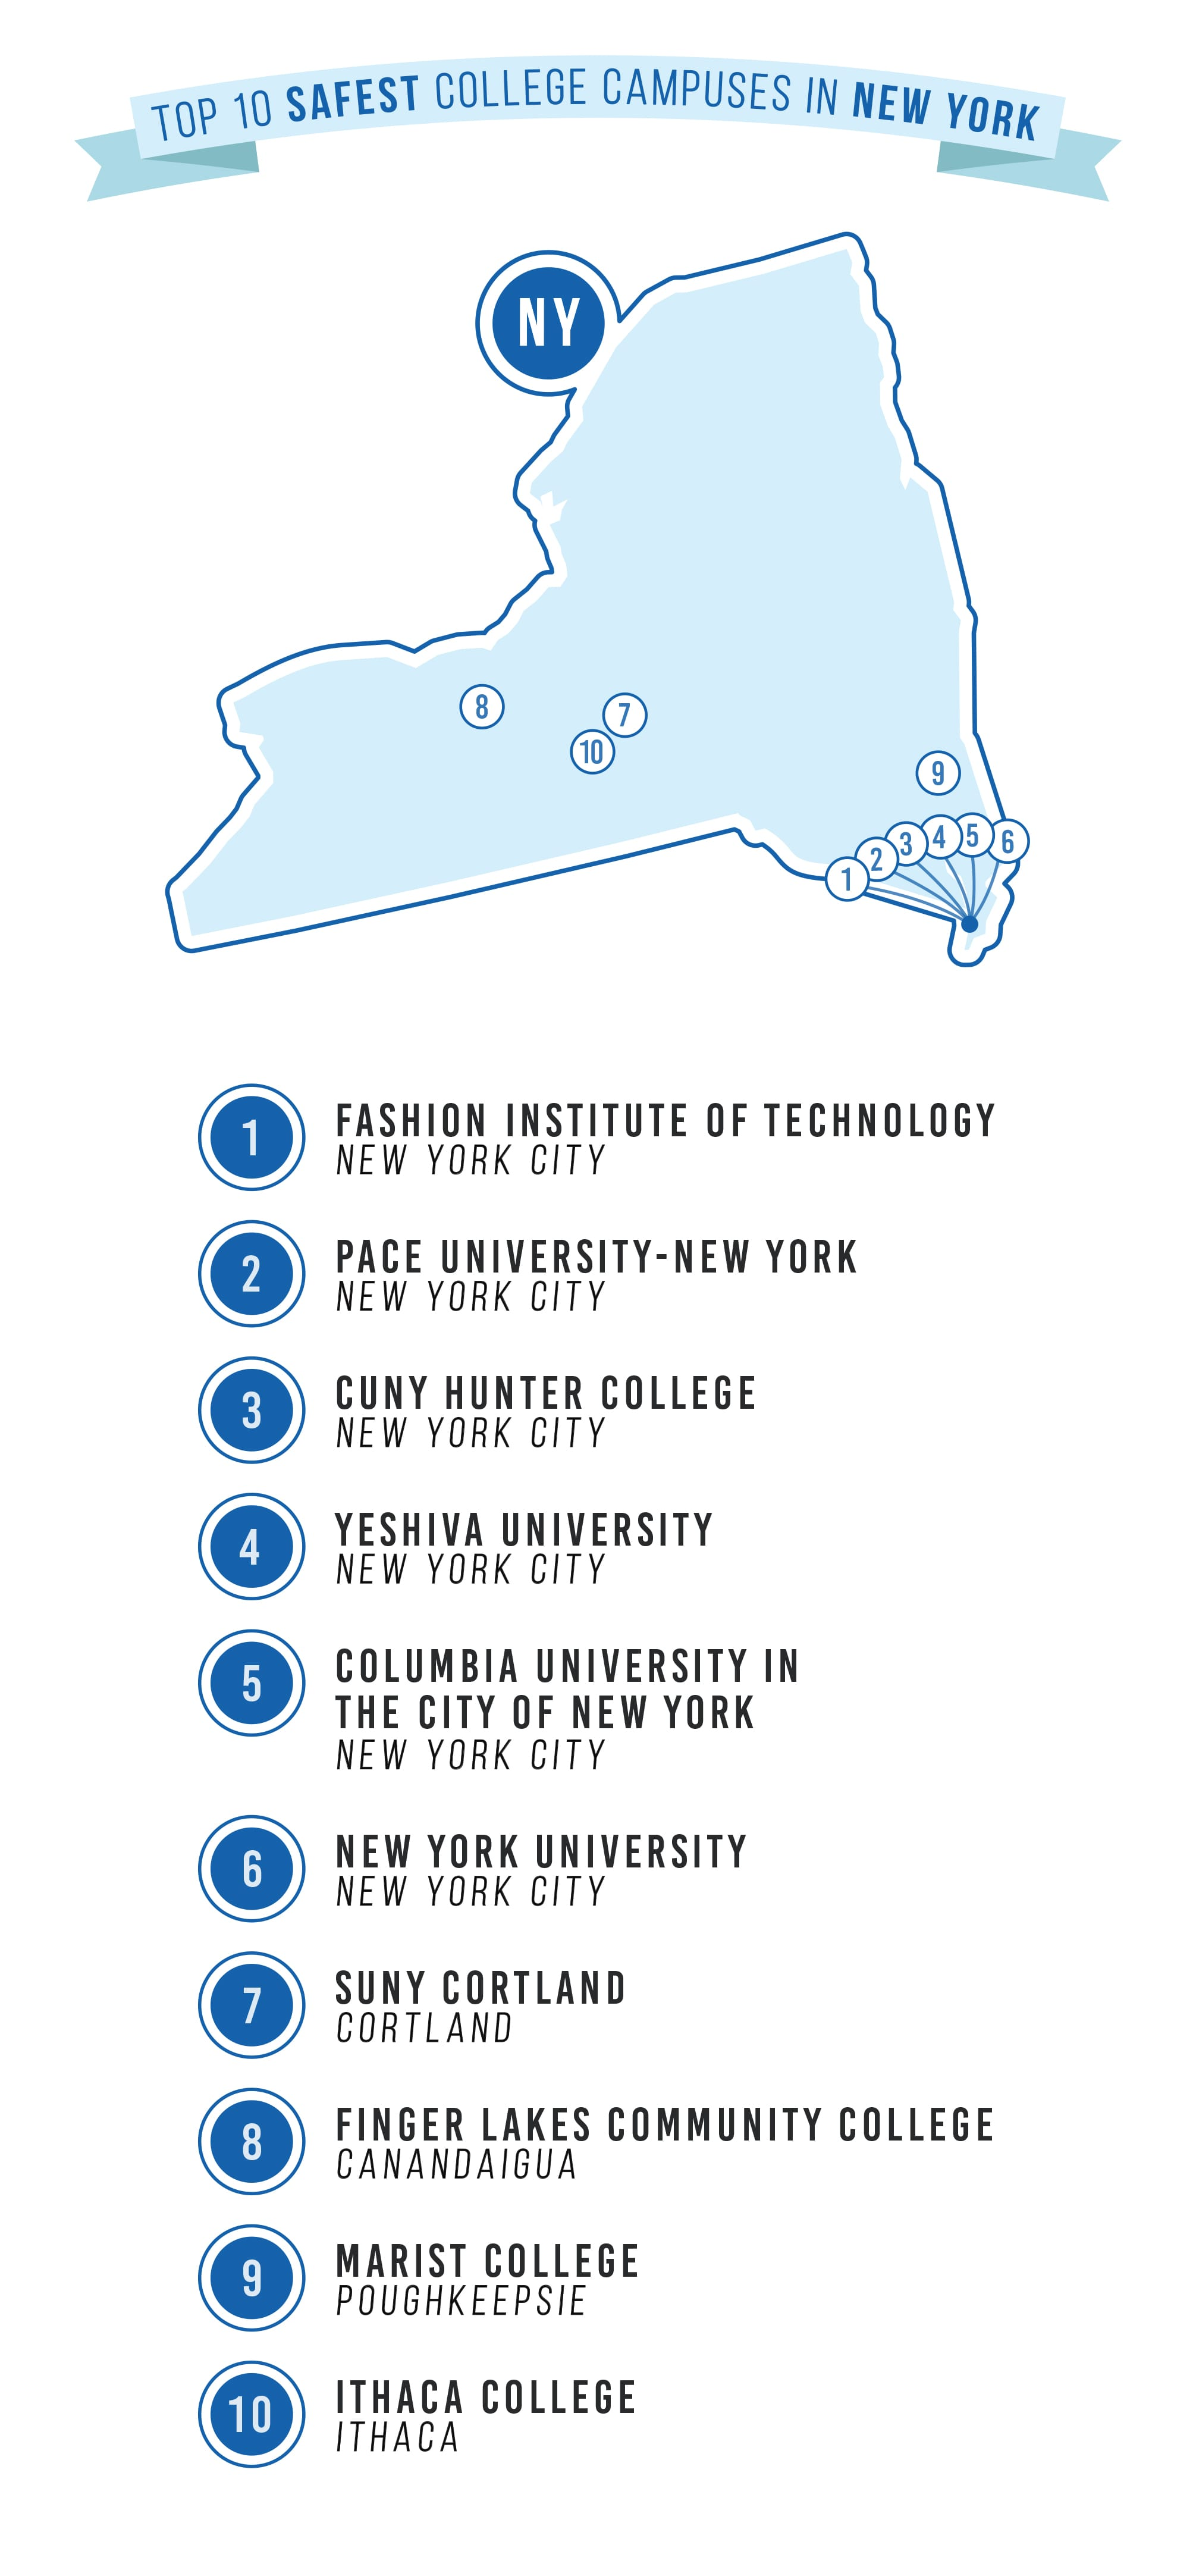 safest college campuses in NY